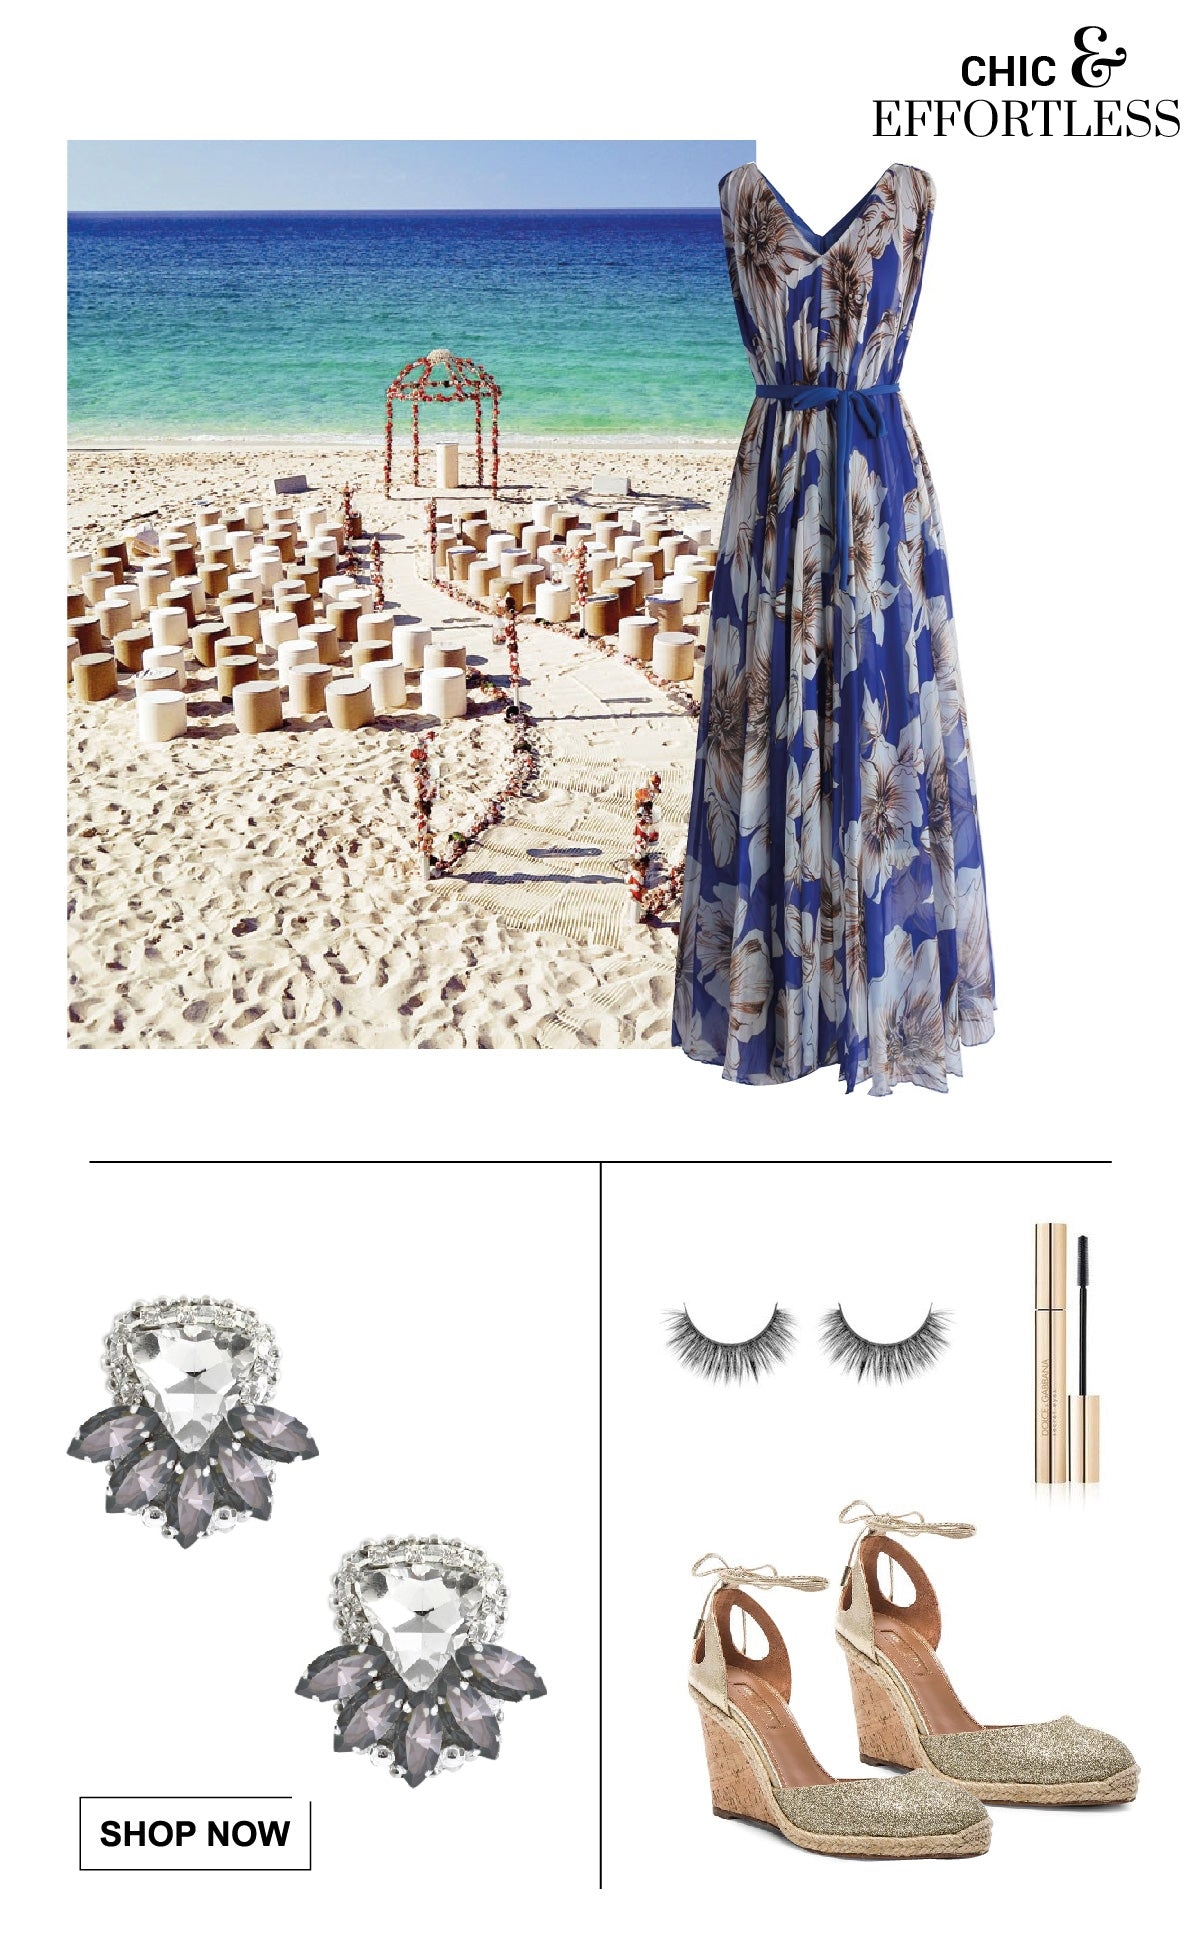 Cool and chic attire for ladies of a wedding on the beach.